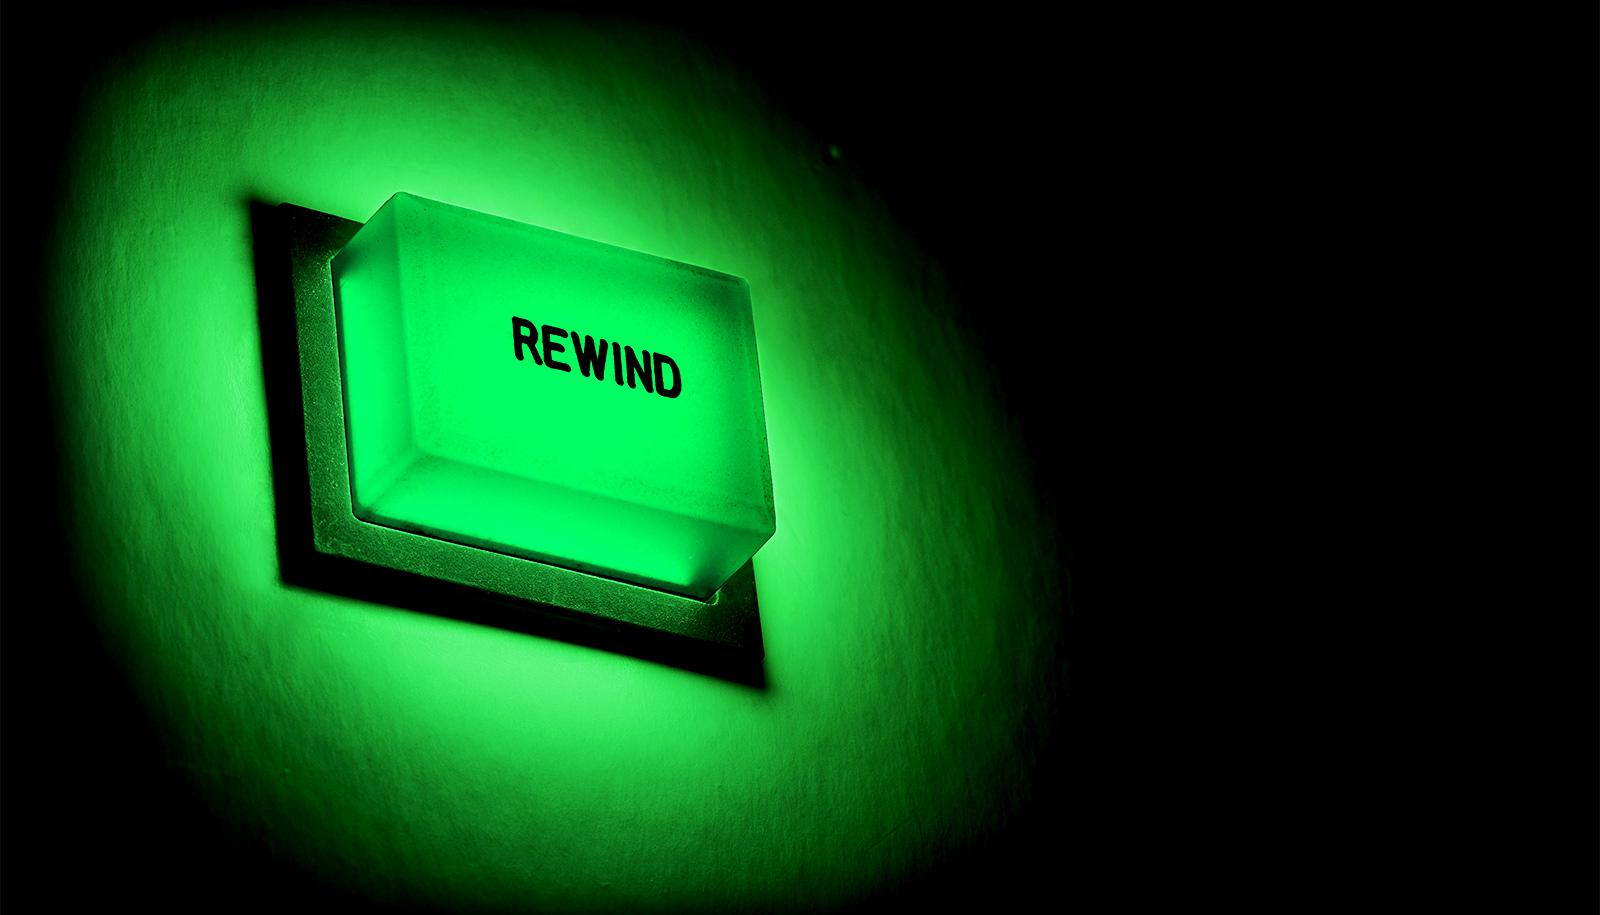 rewind button in green light (LEDs concept)